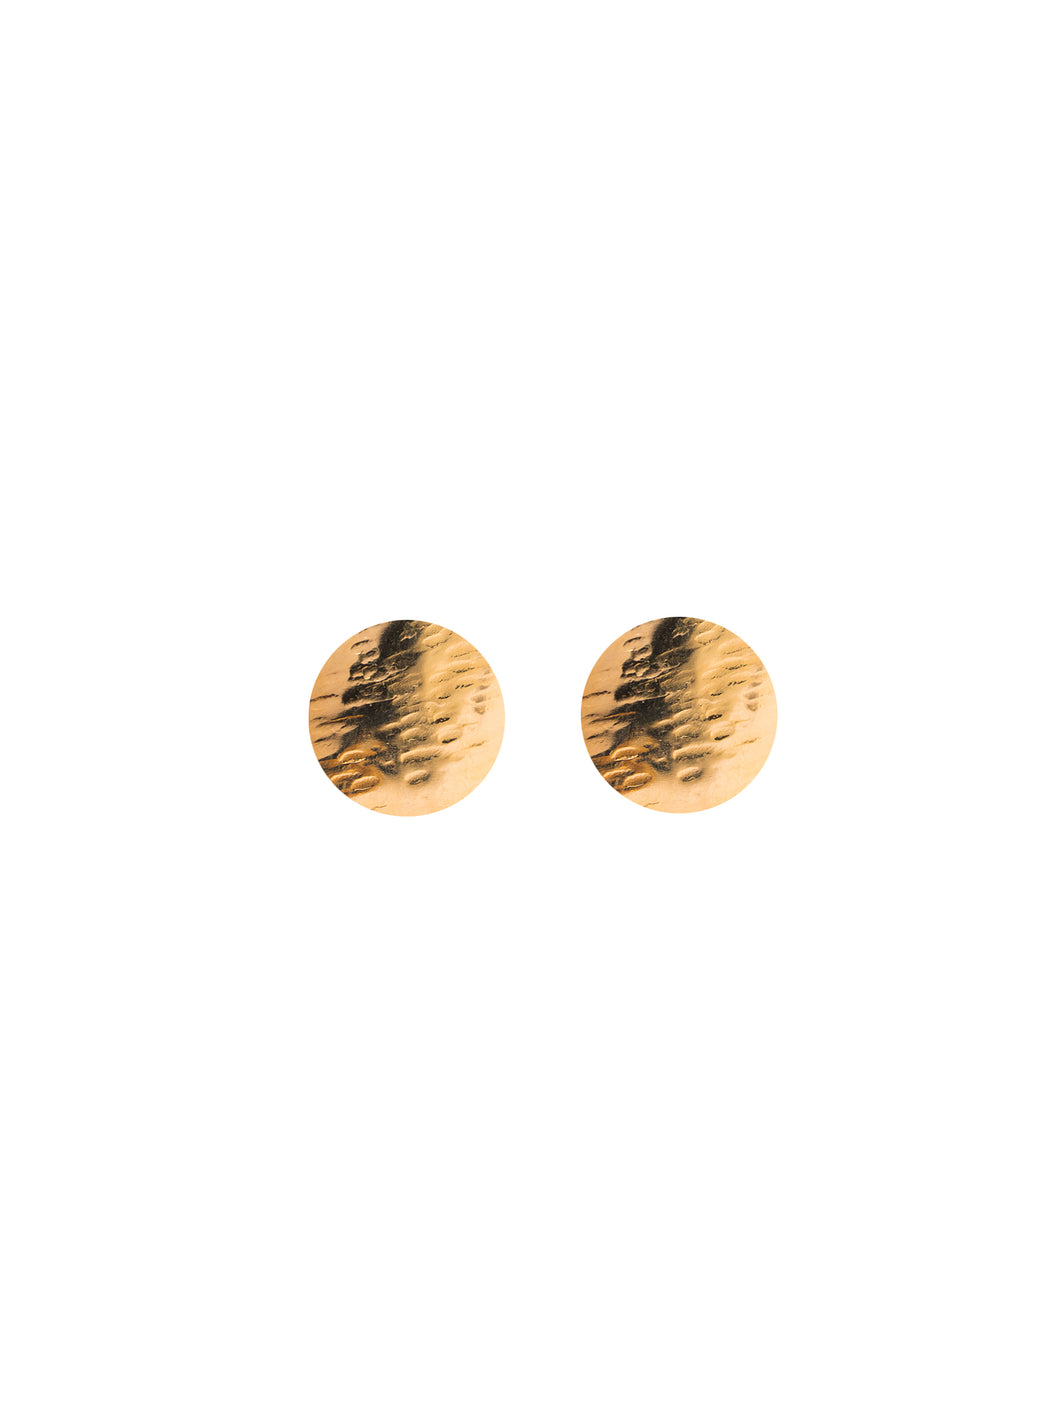 Round Hammered Flat Button - Zebra Effect